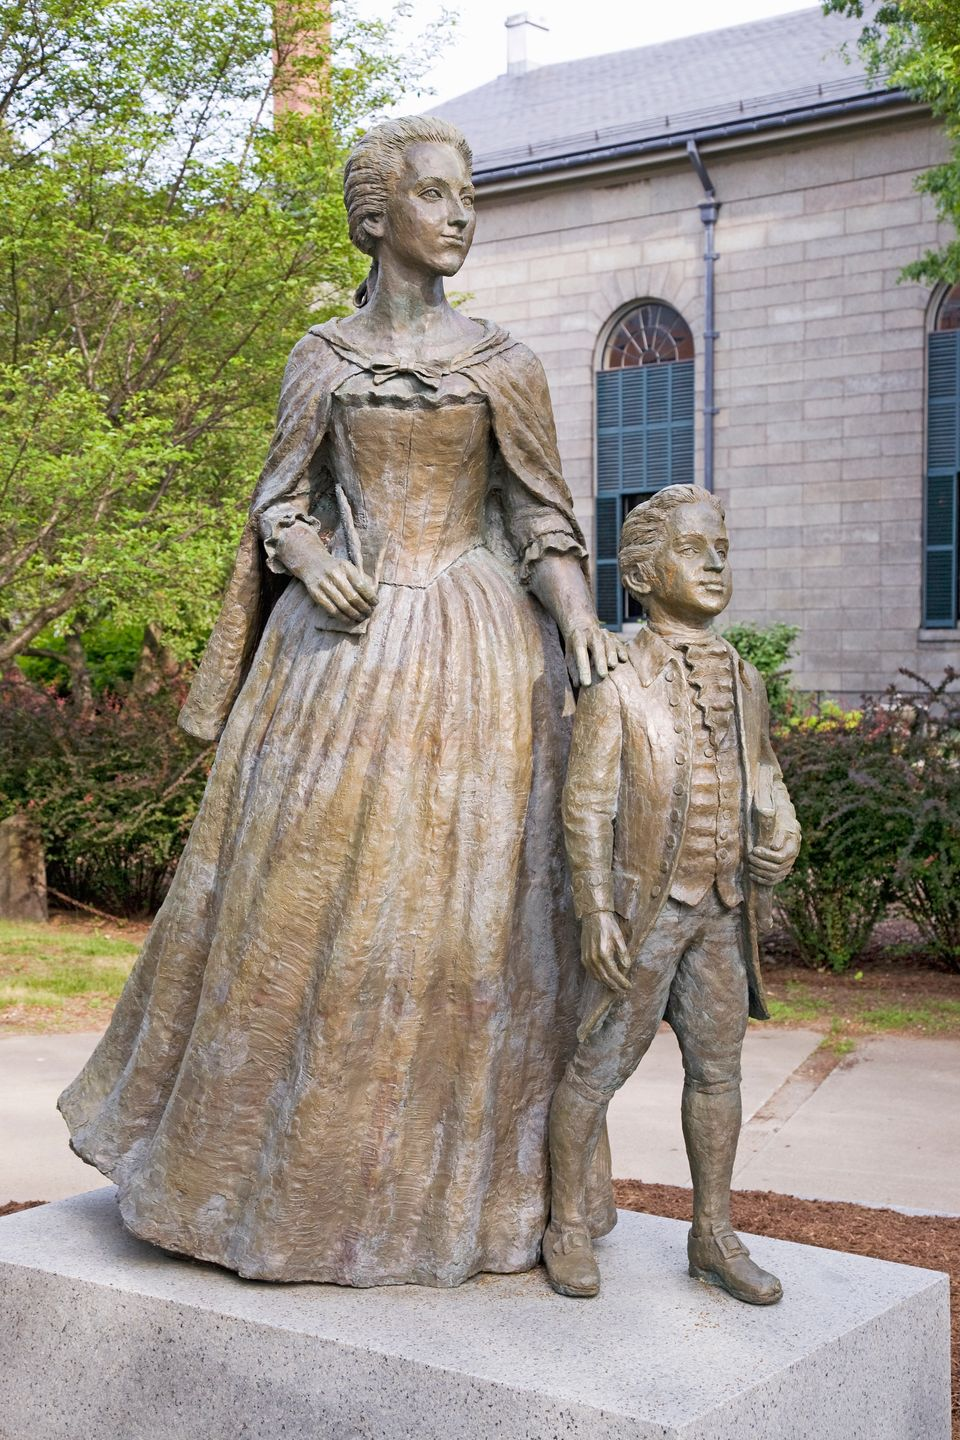 Statue of Abigail Adams and son John Quincy Adams, Quincy, MA., USA (Photo by Visions of America/UIG via Getty Images)